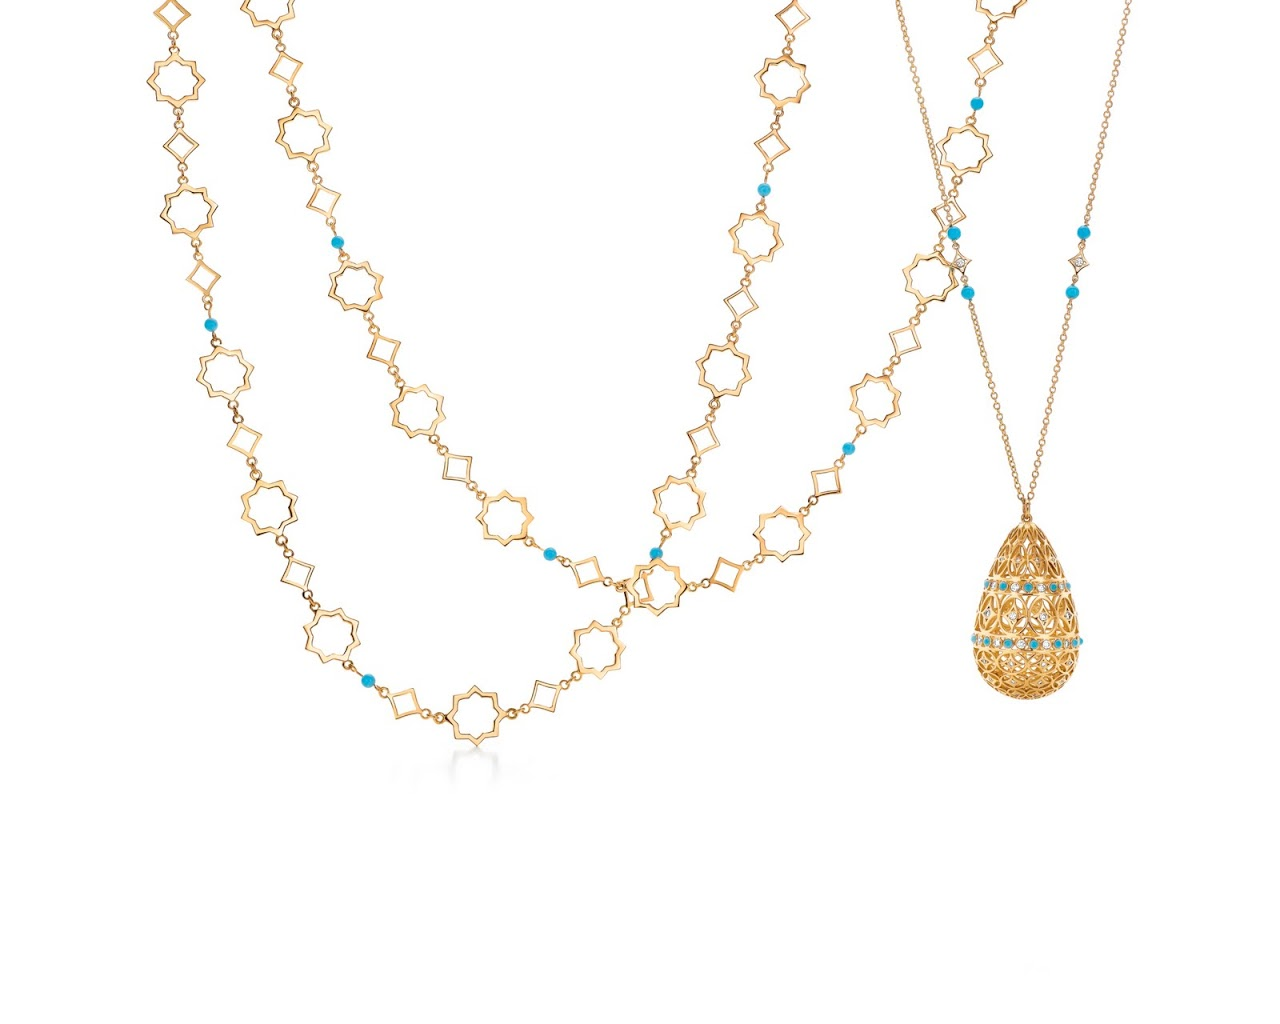 Tiffany's Marrakesh Collection from Paloma Picasso